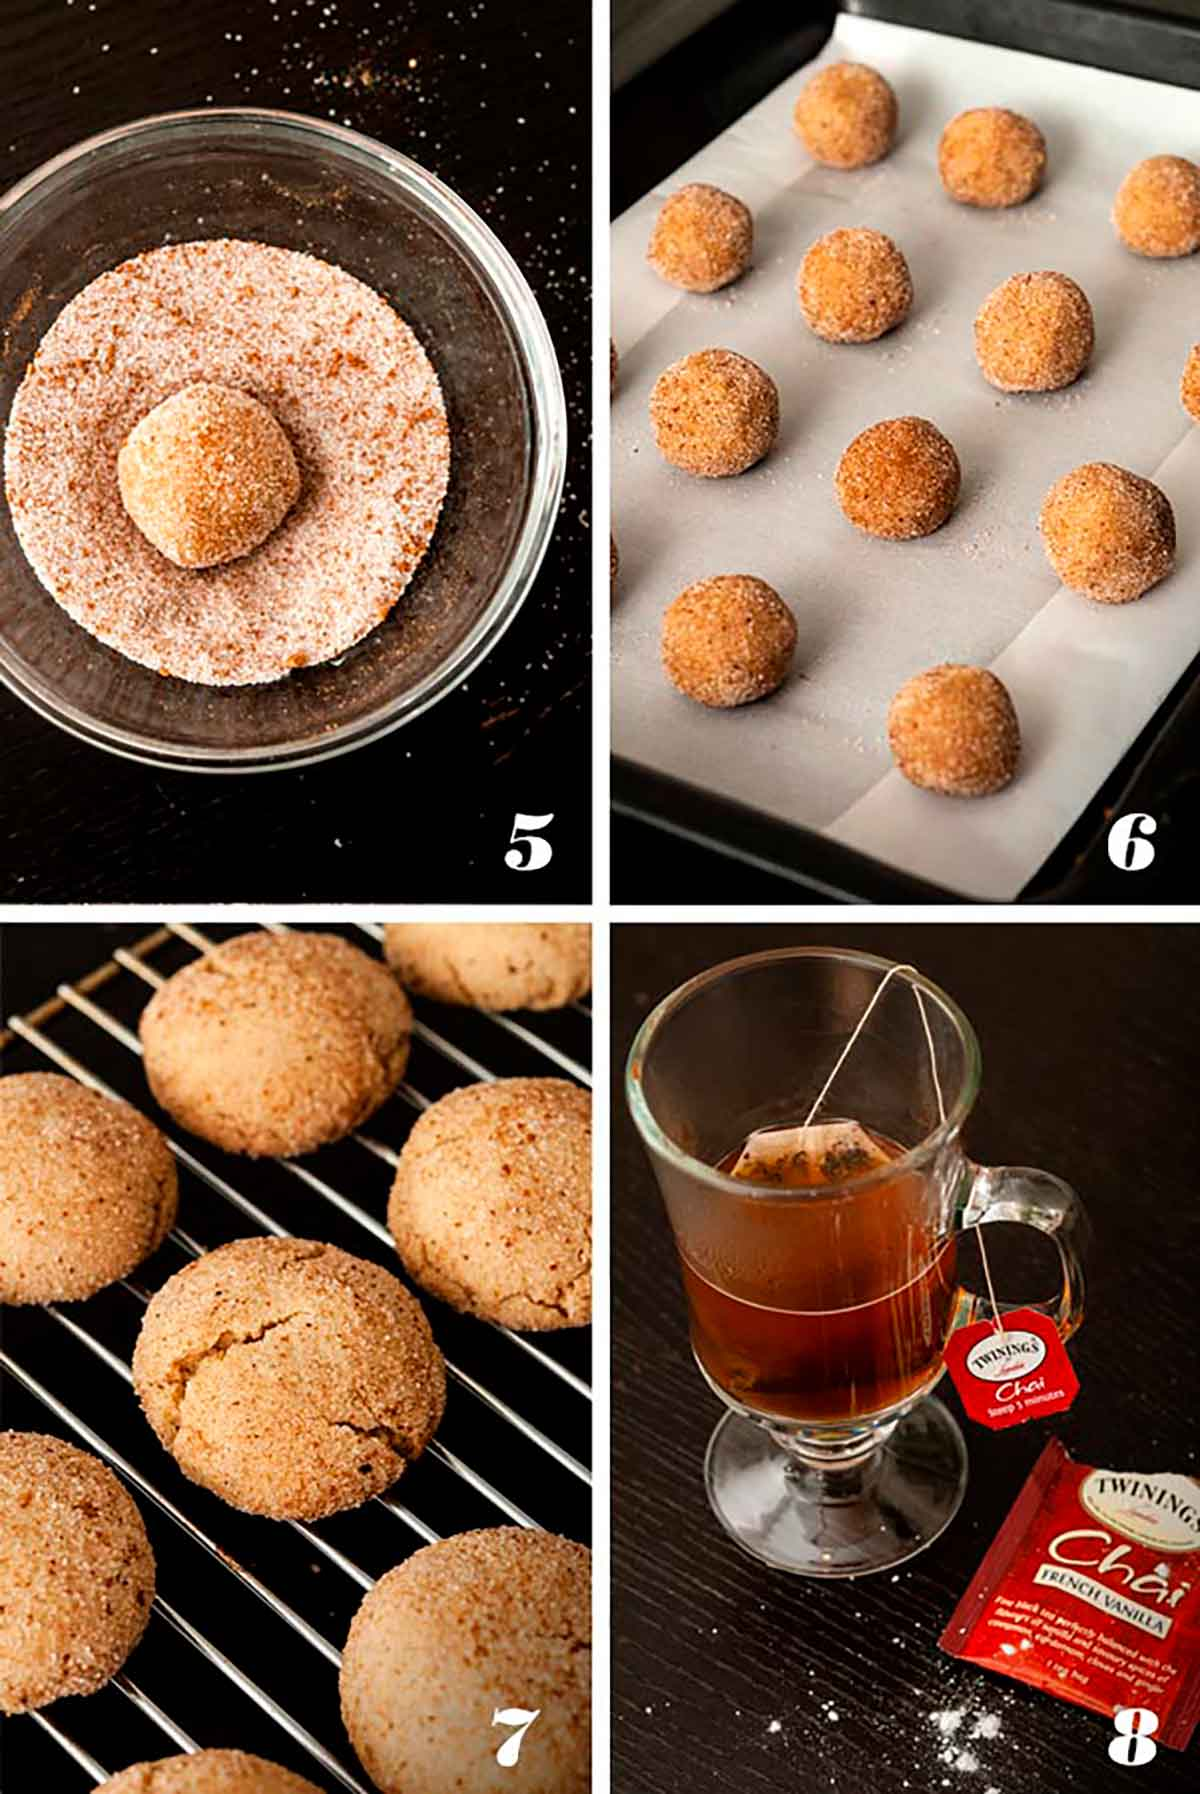 A collage of 4 numbered images showing how to make pumpkin spice snickerdoodles.